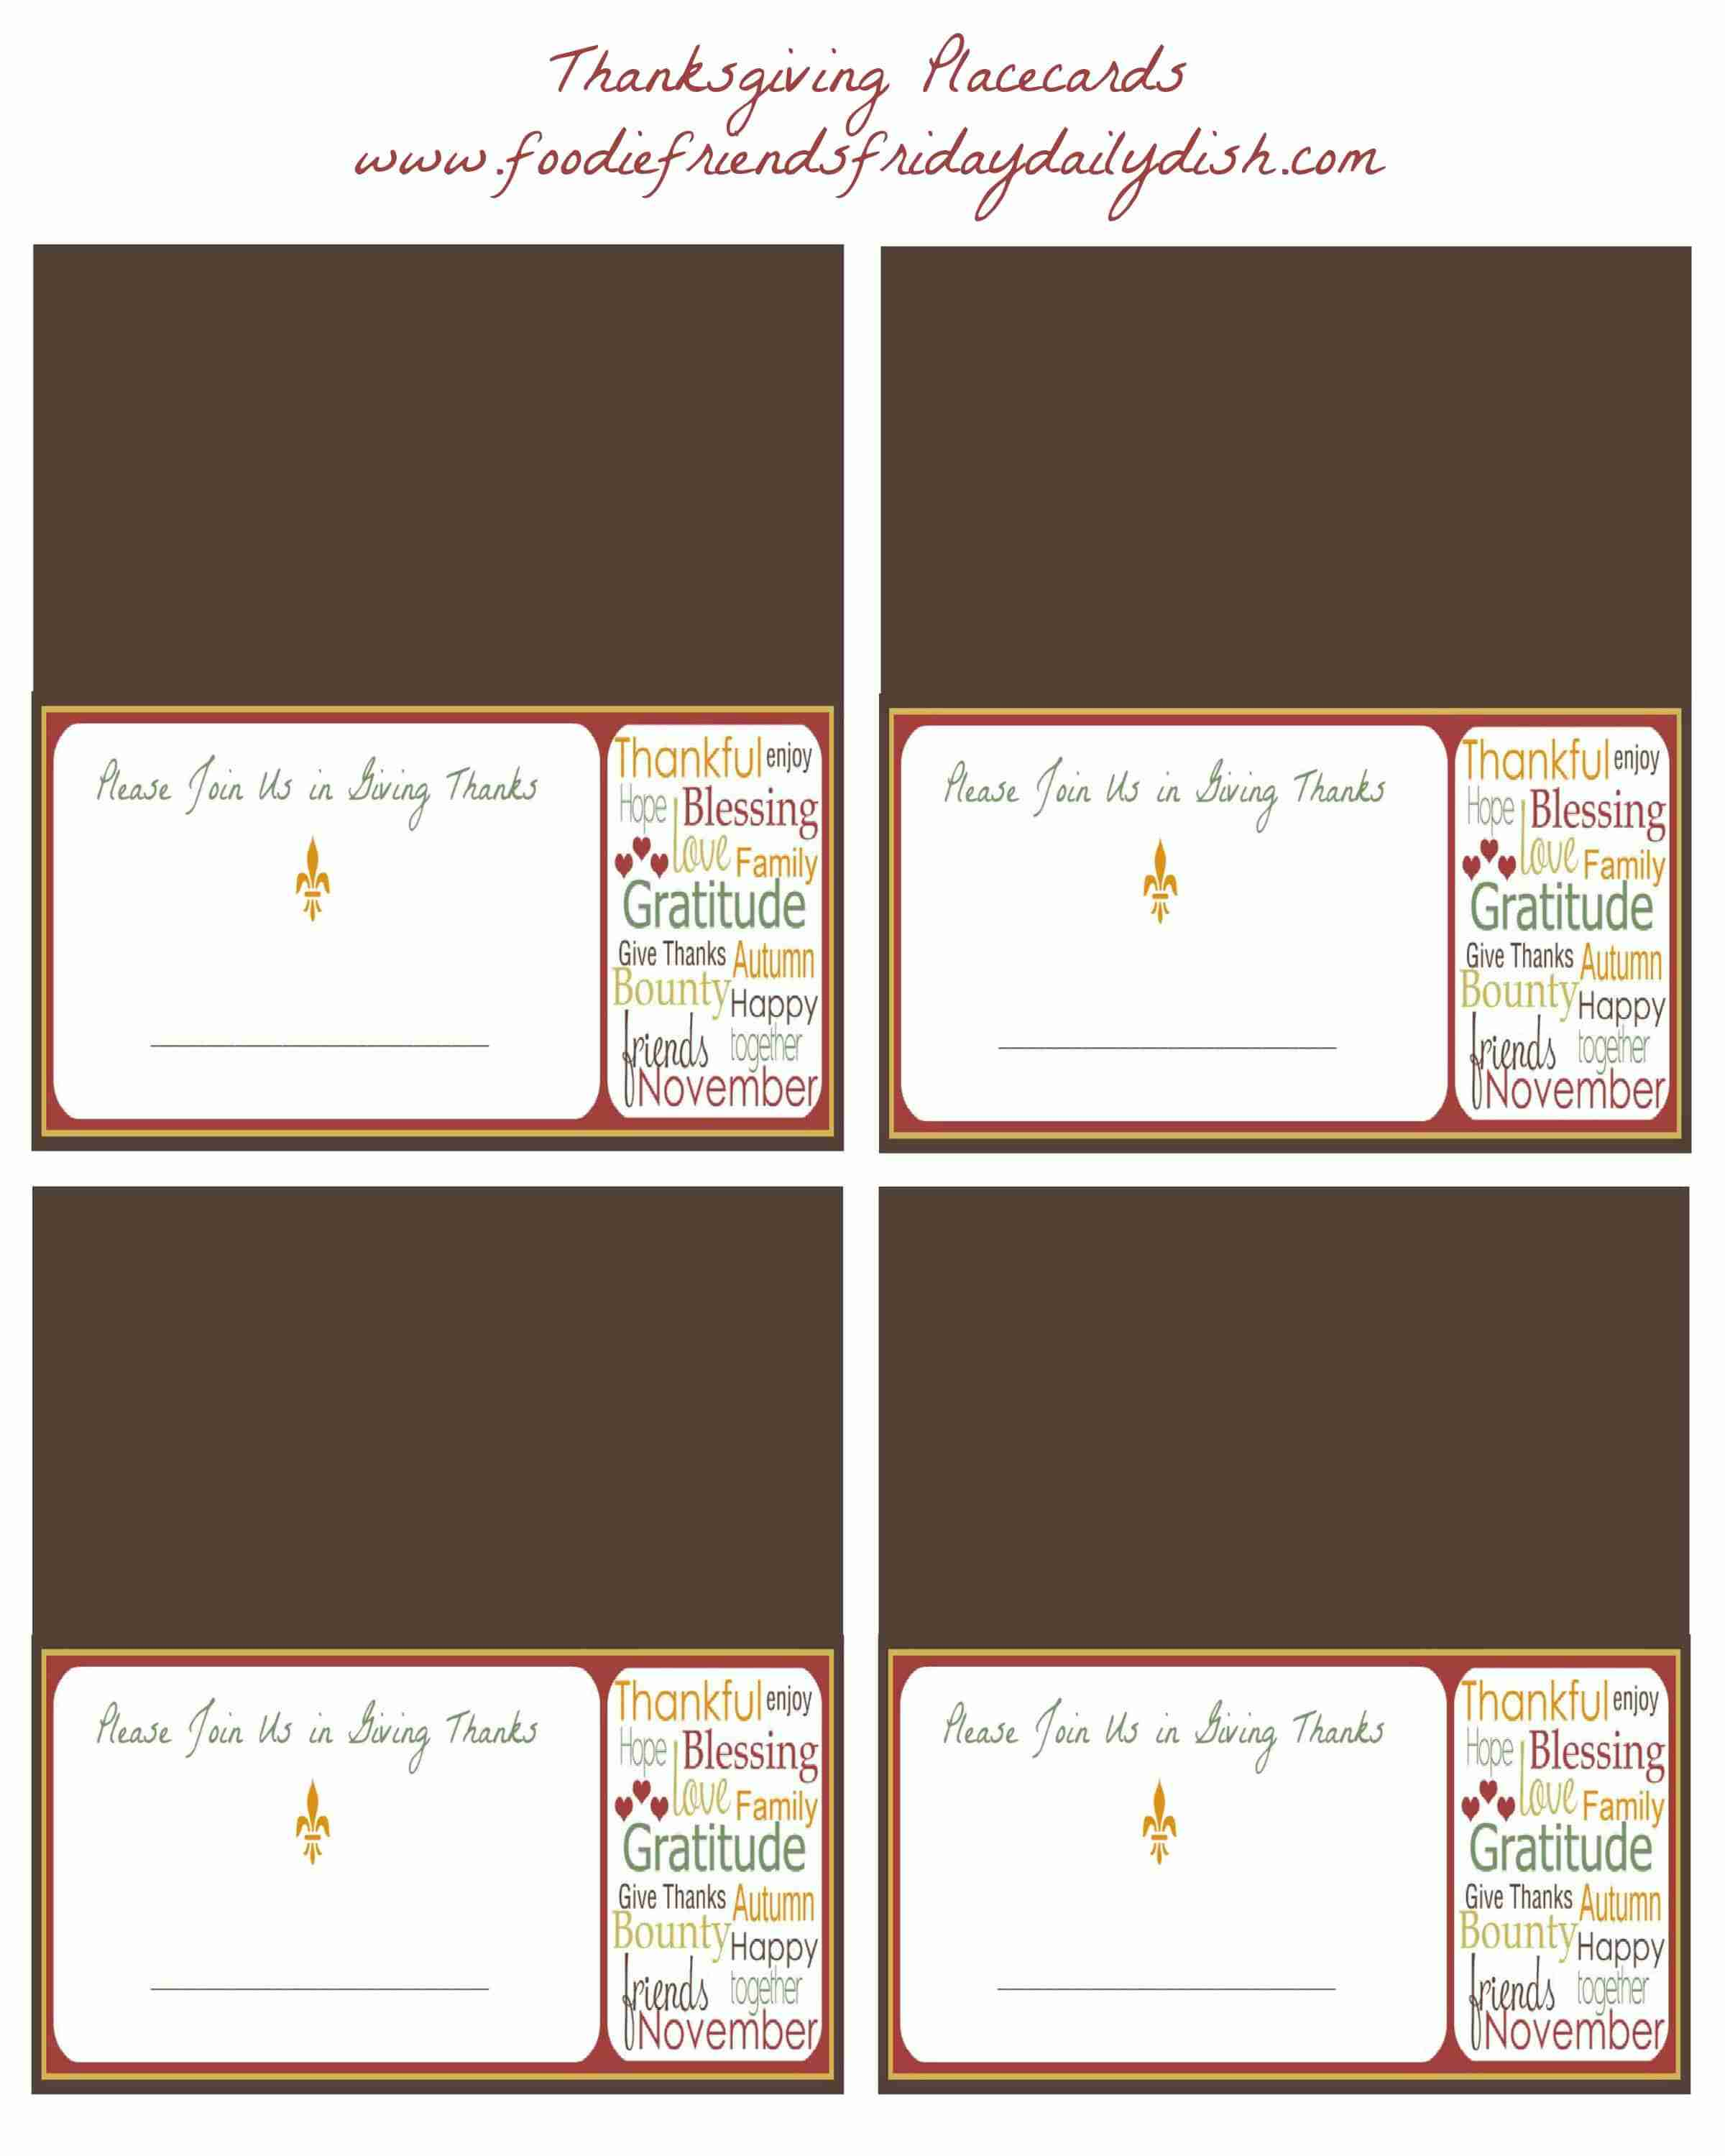 downloadable thanksgiving images